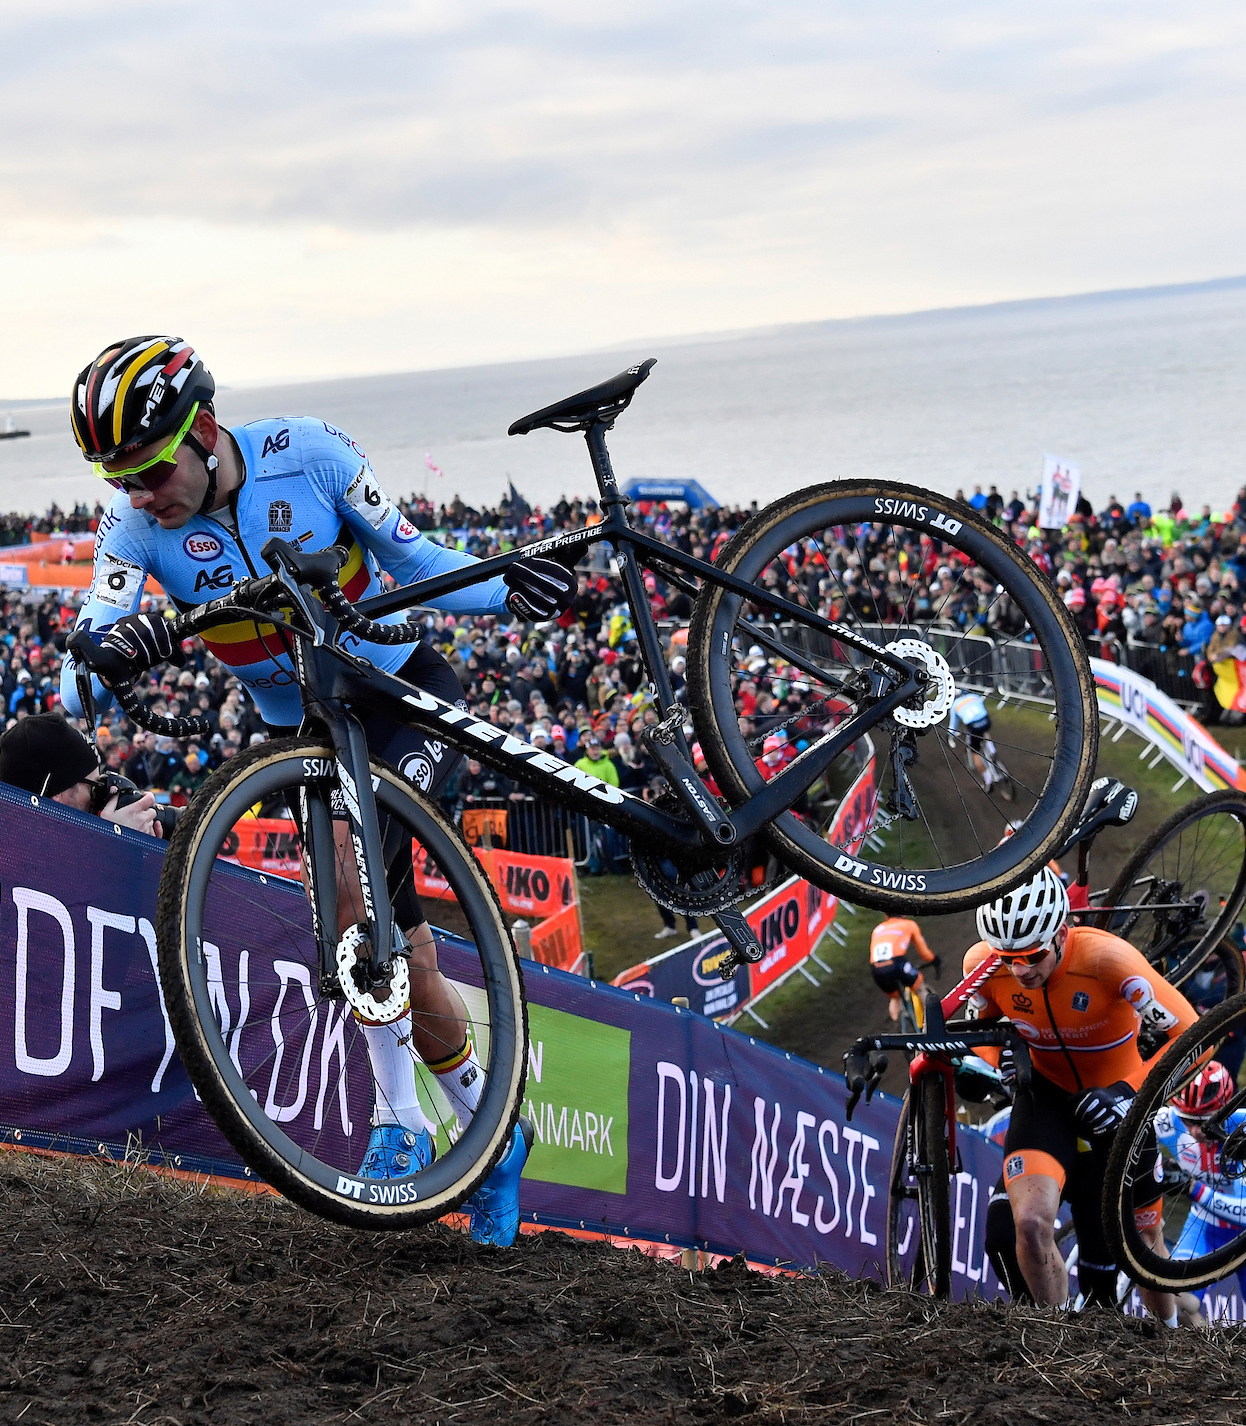 UCI Cyclo cross 2019